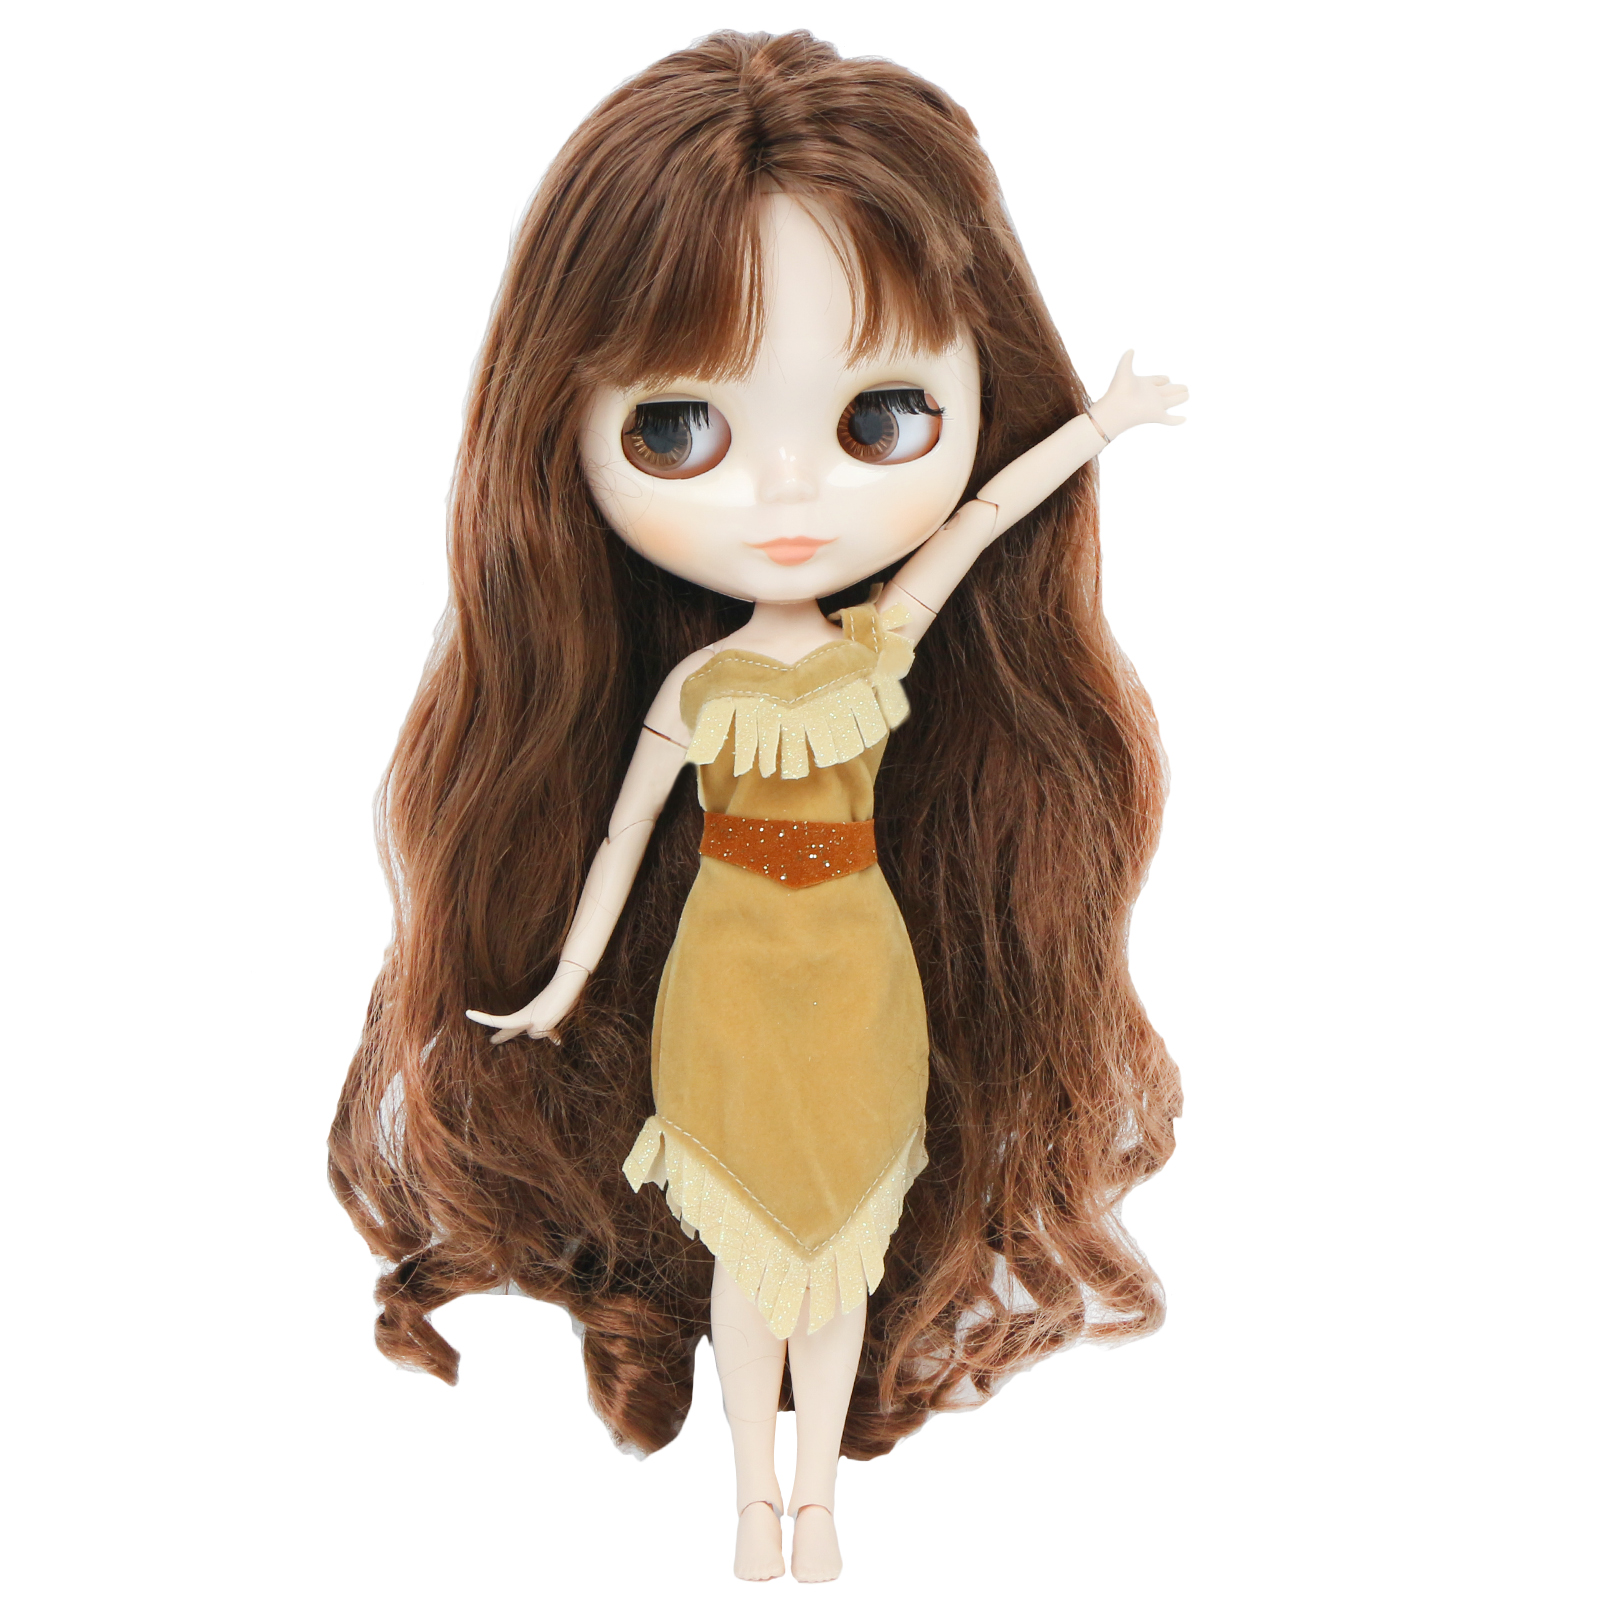 High Quality Fashion Tale Fair Doll Dress Princess Dinner Party Wear Mini Gown Skirt Clothes For Blythe Doll Accessories Kid Toy